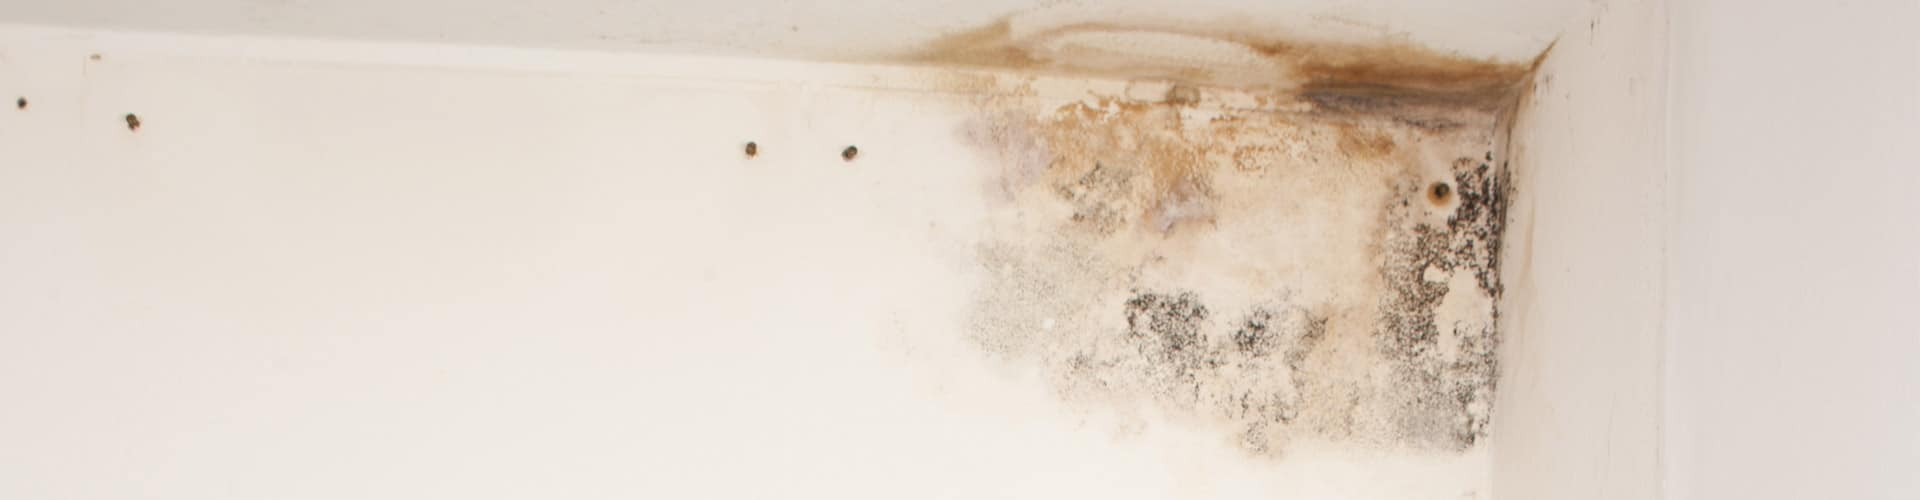 Mold-Growth-Corner-of-Ceiling-500